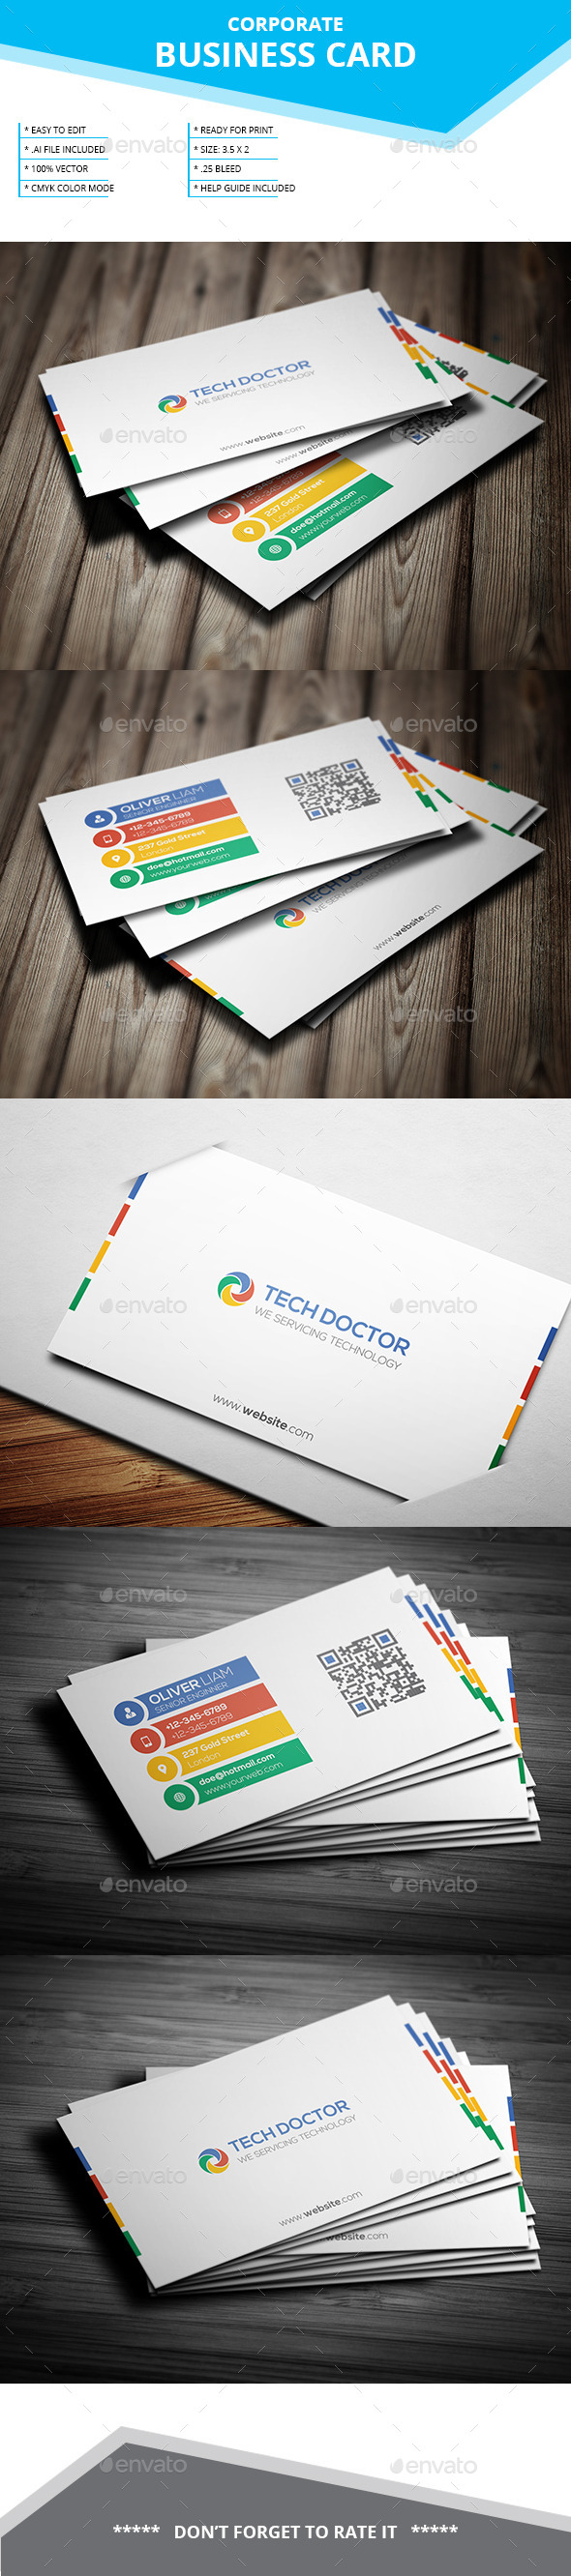 Corporate Business Card _ SL-30 - Business Cards Print Templates